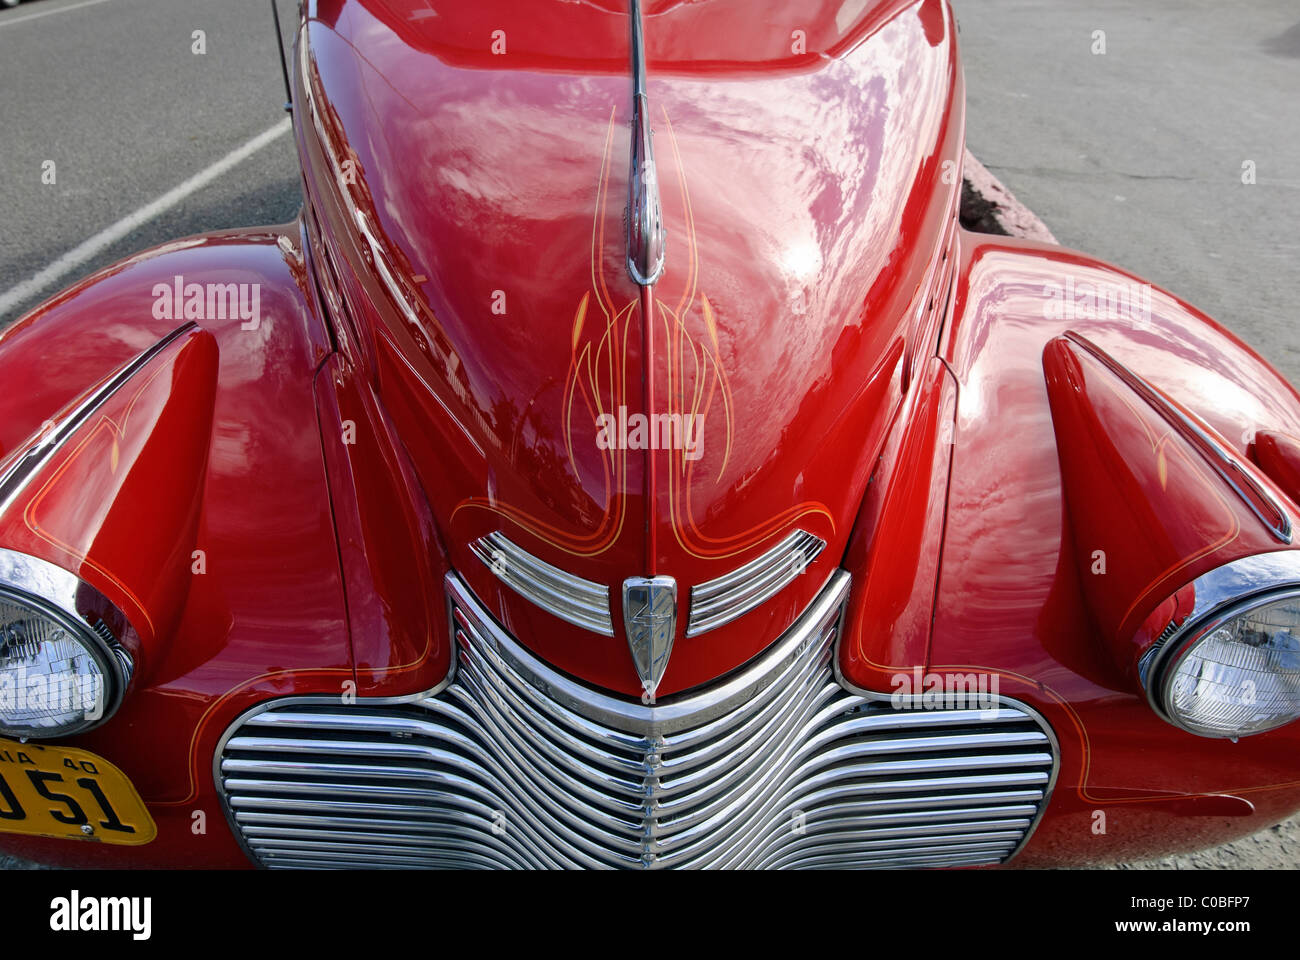 Bright red classic Chevrolet Master Deluxe car. - Stock Image